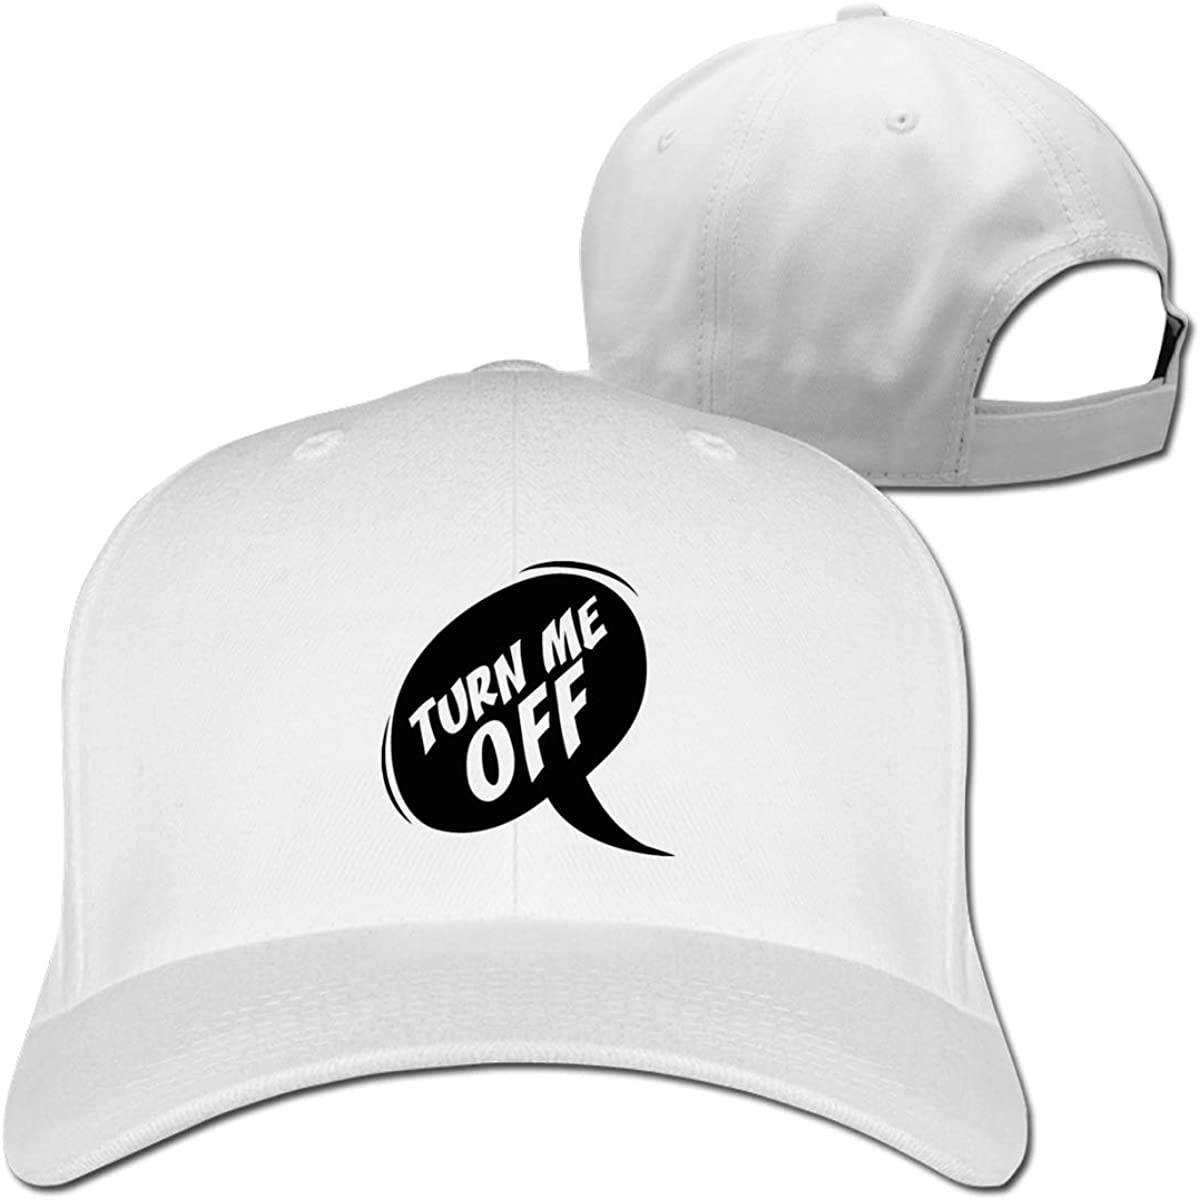 Turn Me Off Fashion Adjustable Cotton Baseball Caps Trucker Driver Hat Outdoor Cap White